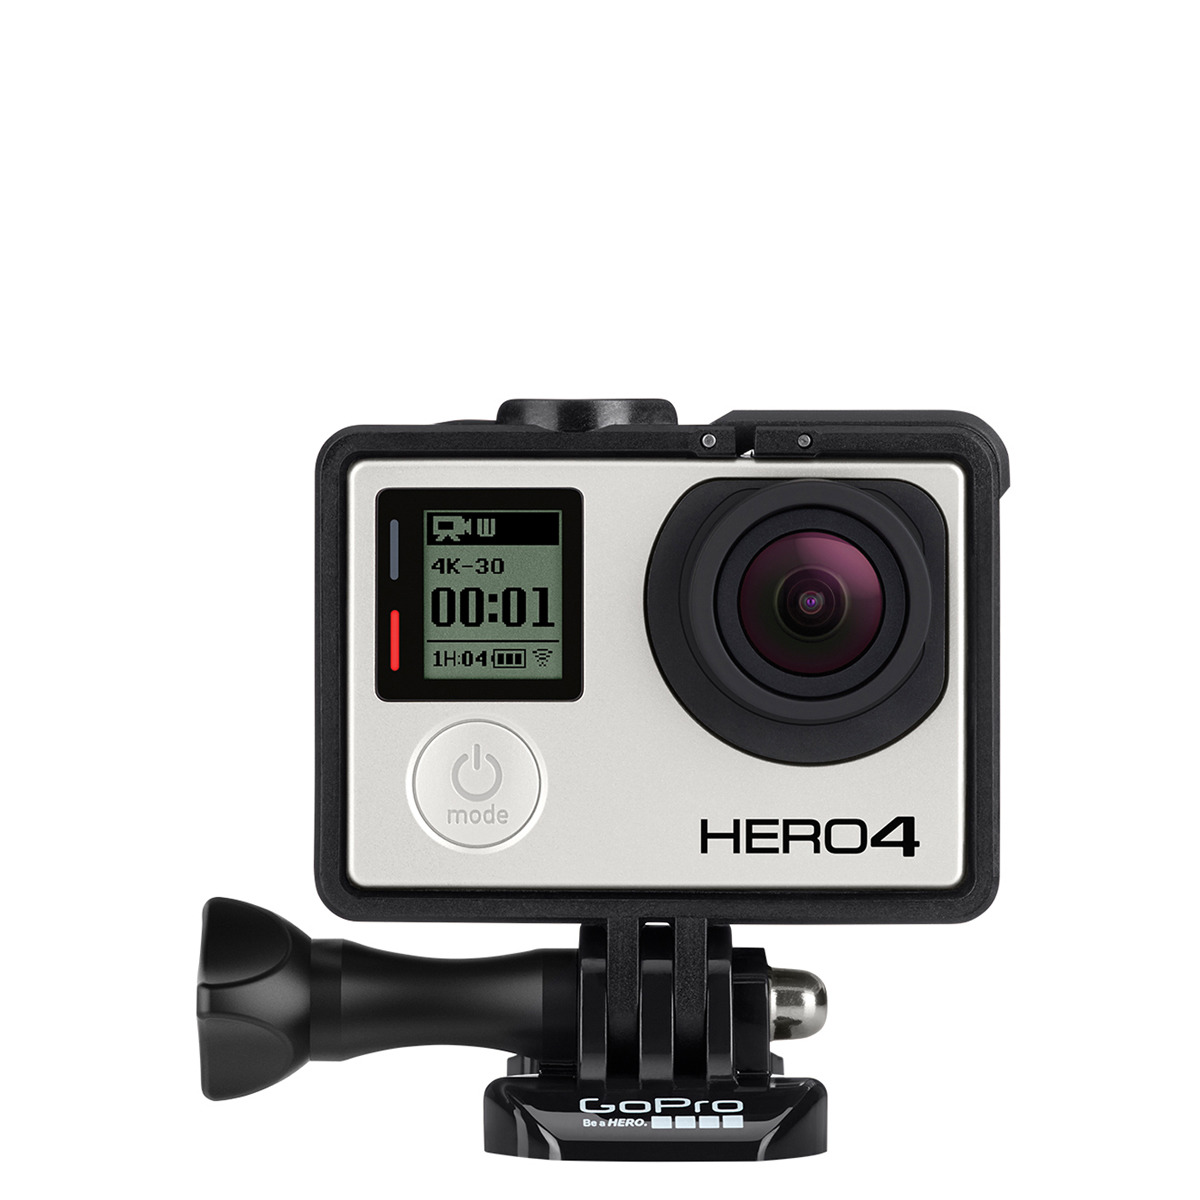 Cámara digital GoPro HERO4 Black Edition de 12 MP